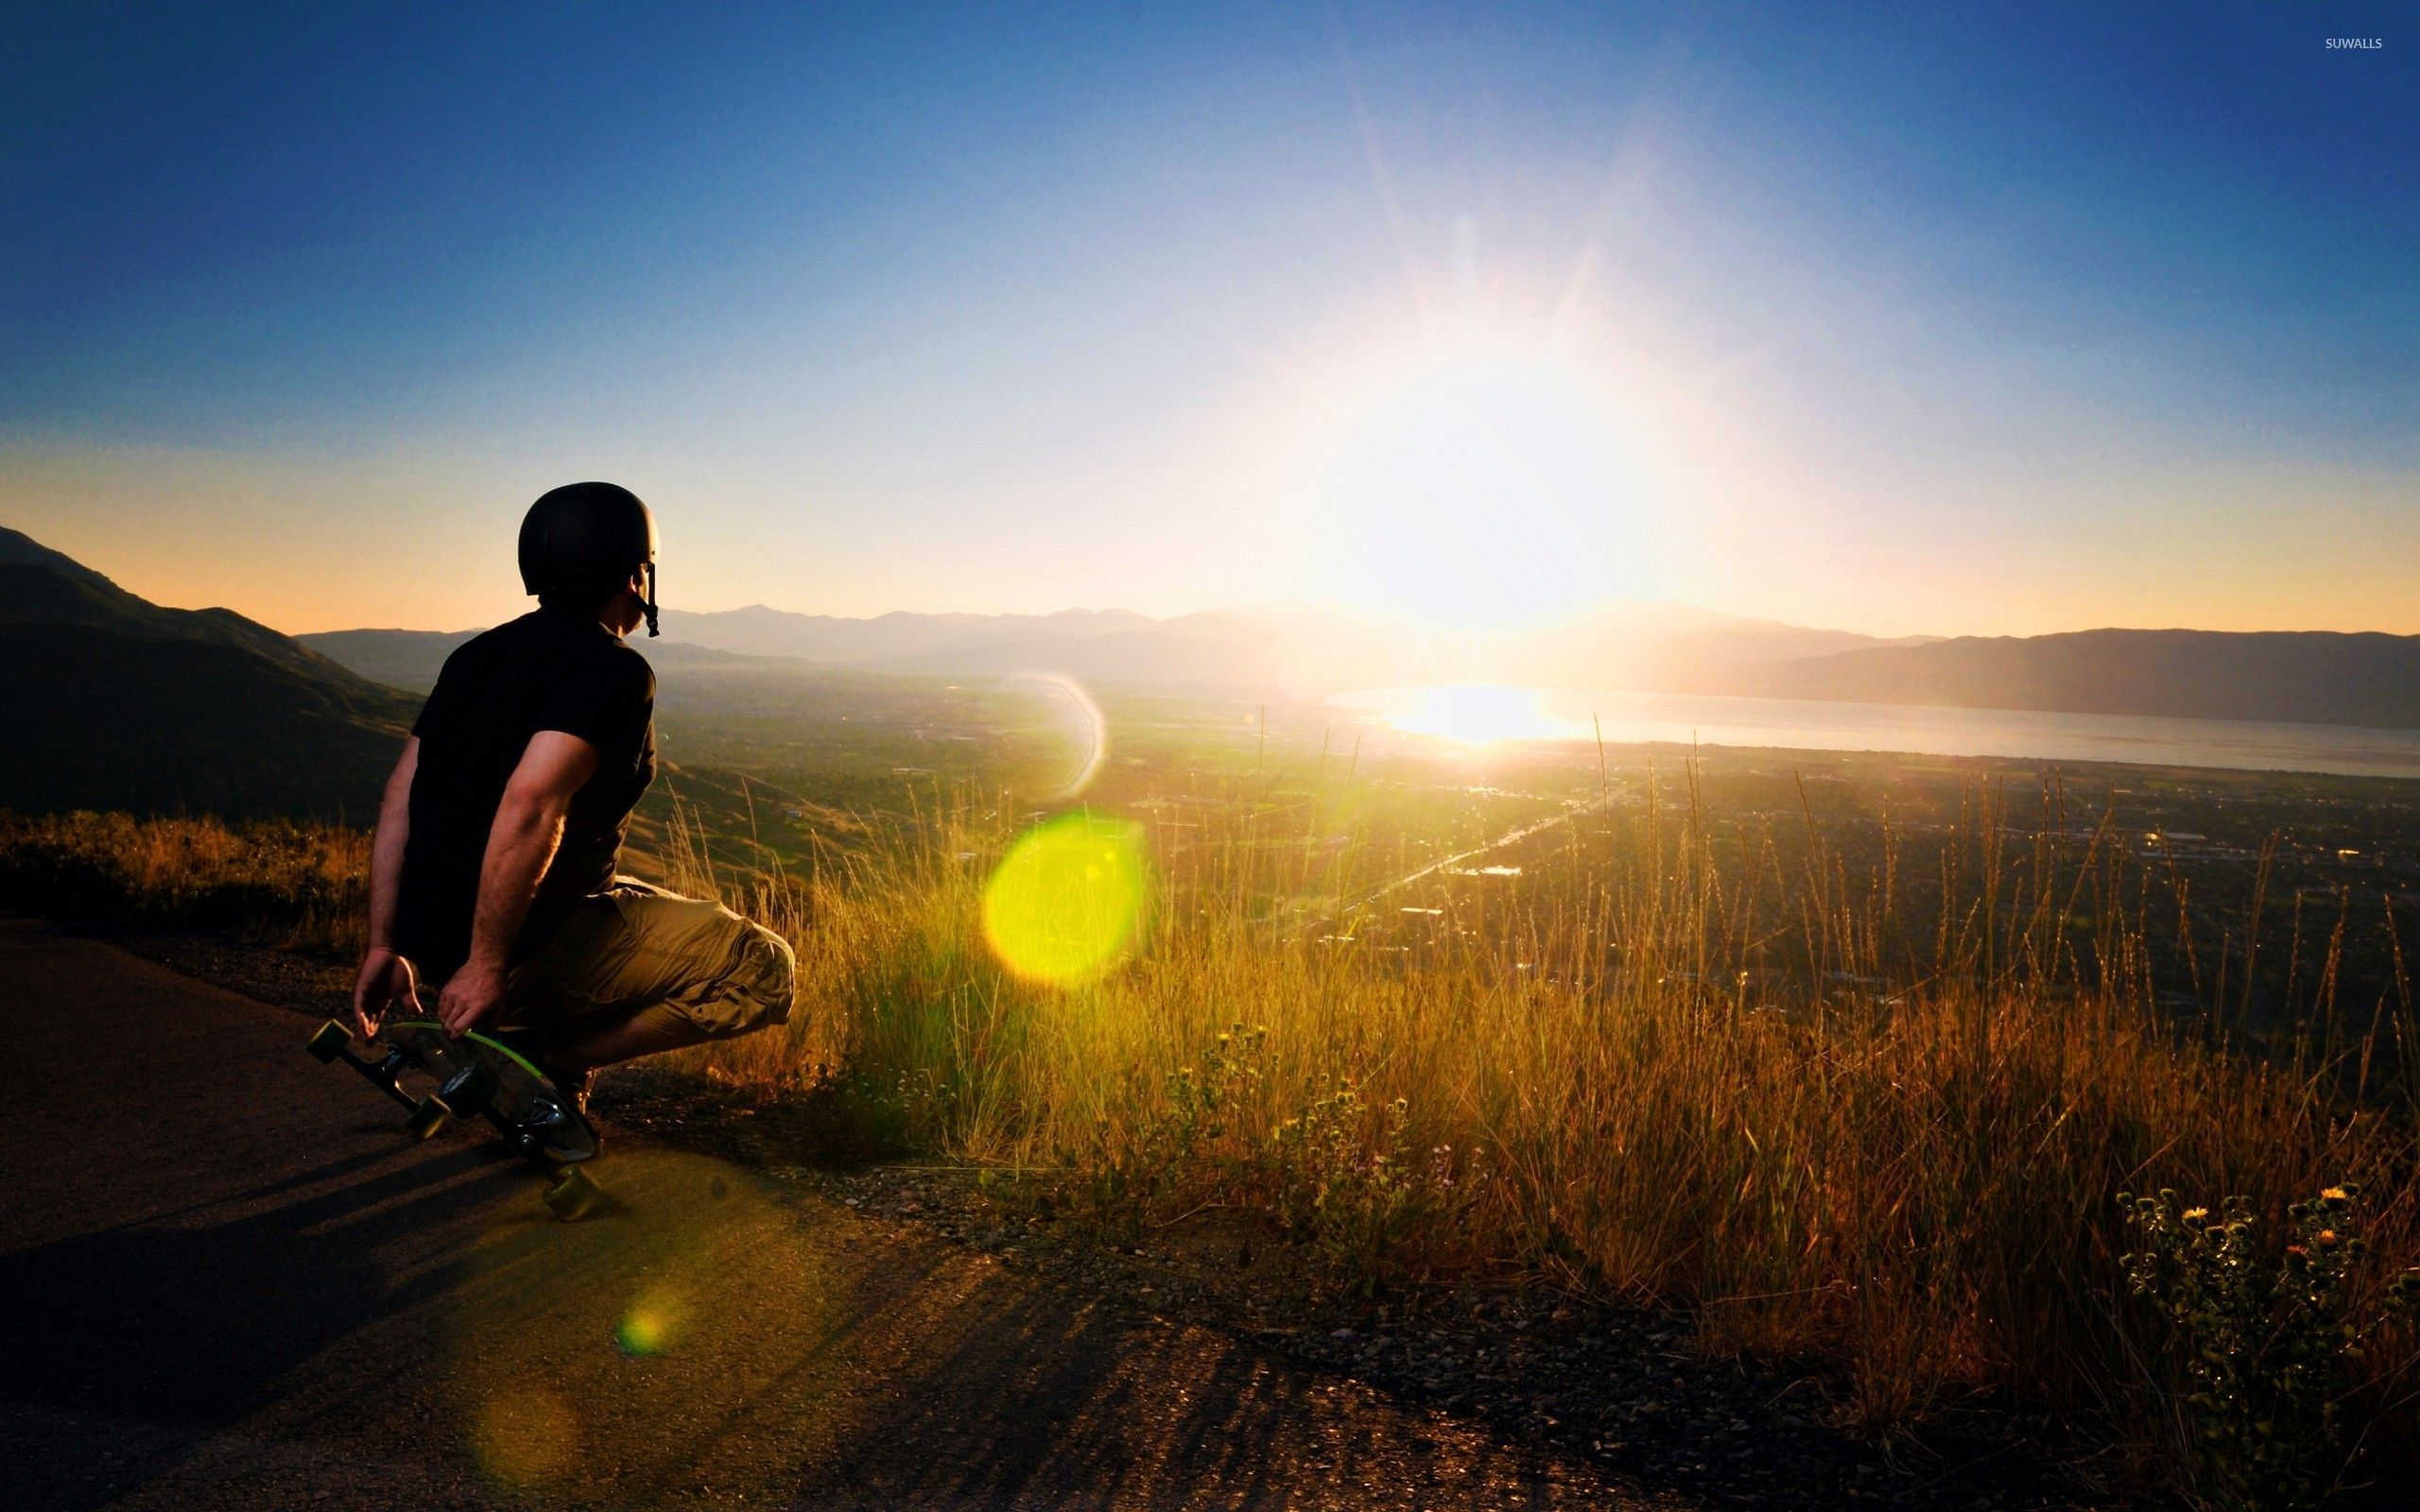 Hd Motorcycle Wallpaper Widescreen Skater Watching The Sunset Wallpaper Photography